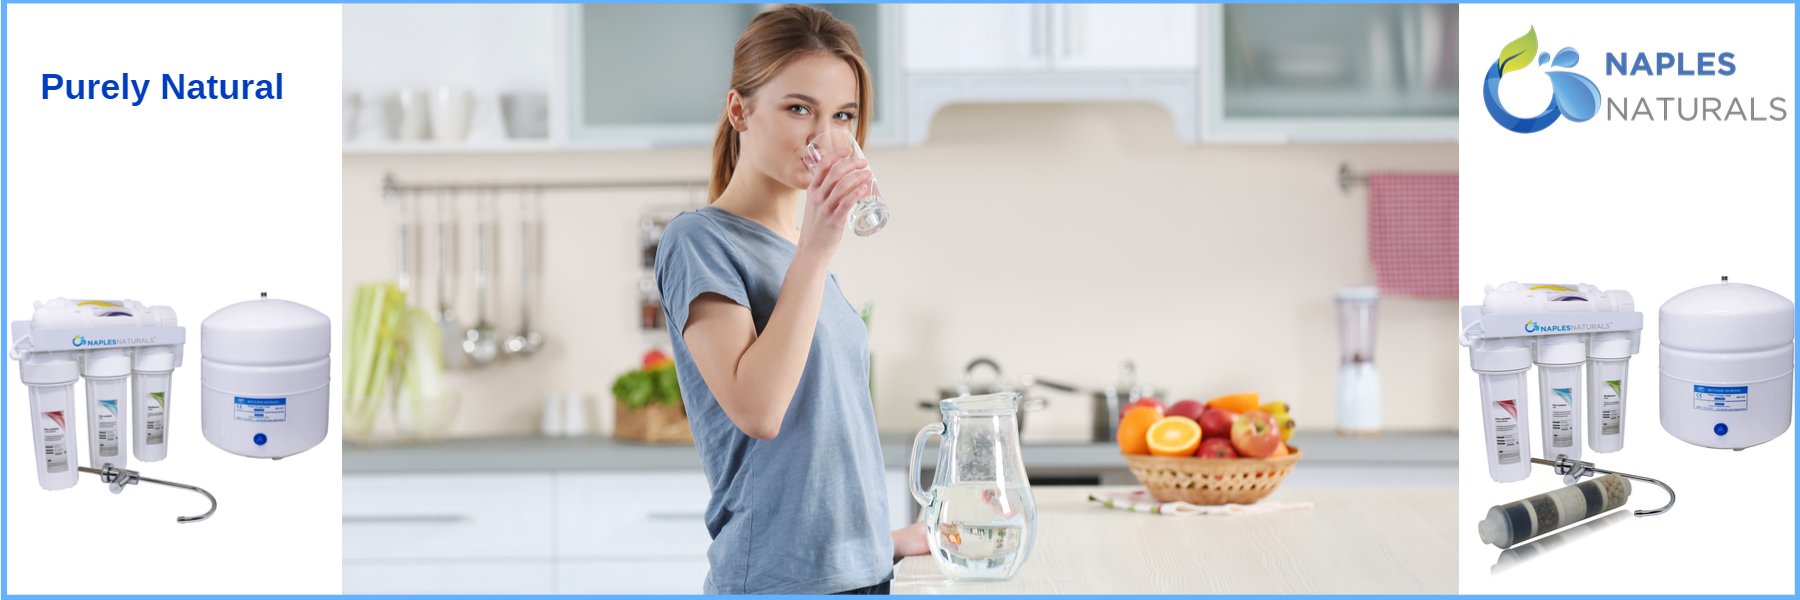 naples naturals reverse osmosis water filtration